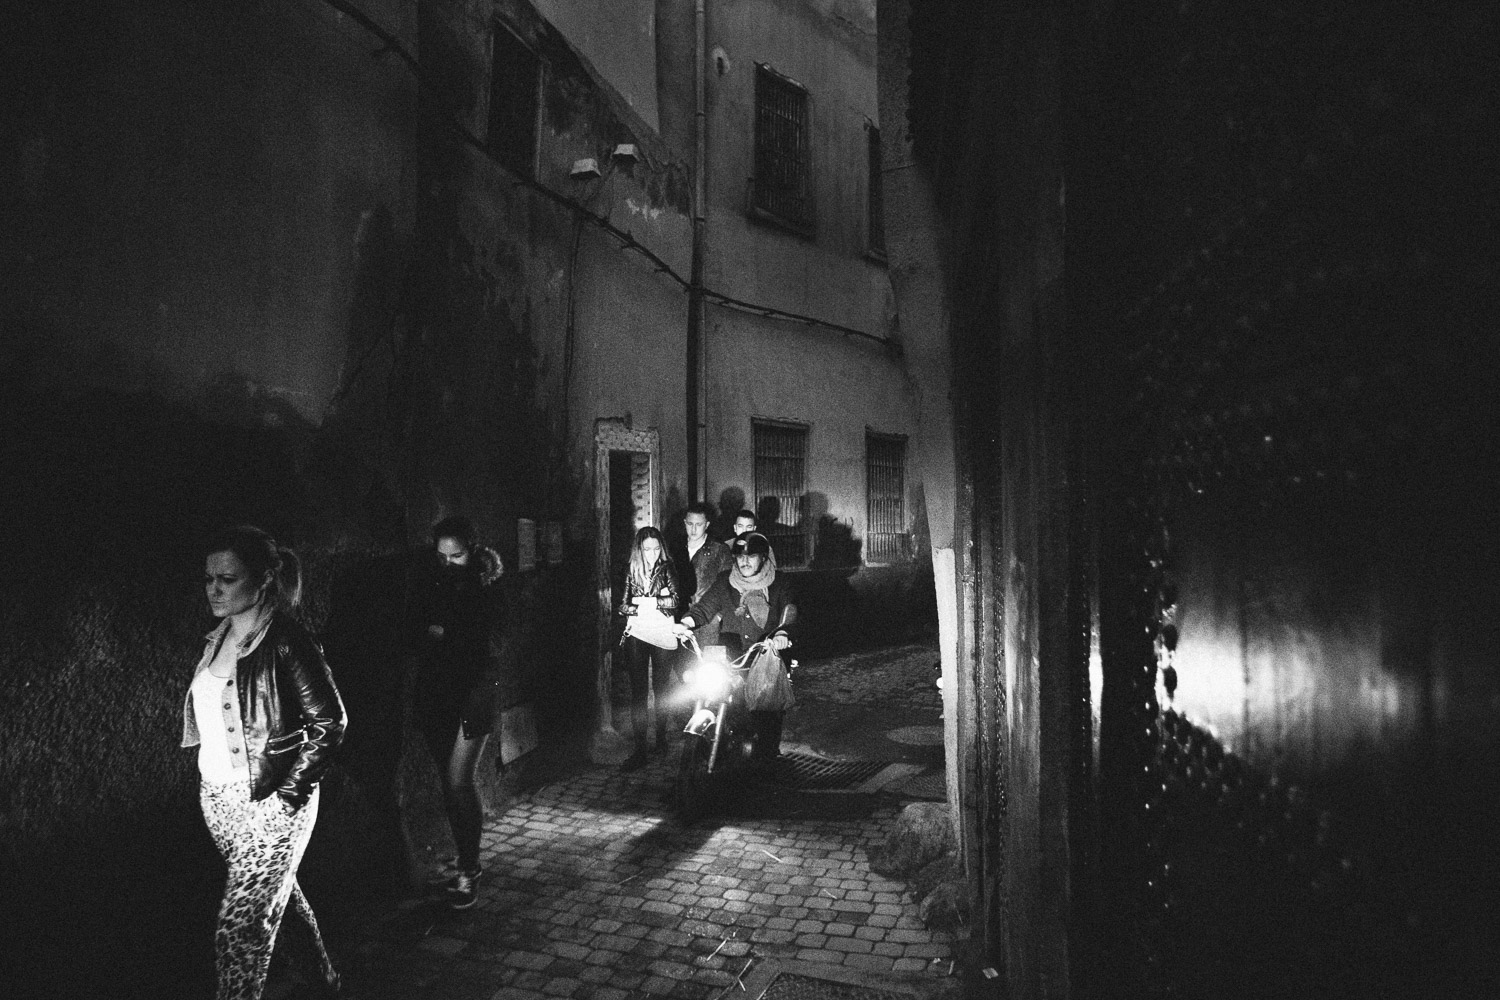 Night-time streets are as busy and crowded (or more) as during the day. Marrakech, Morocco.